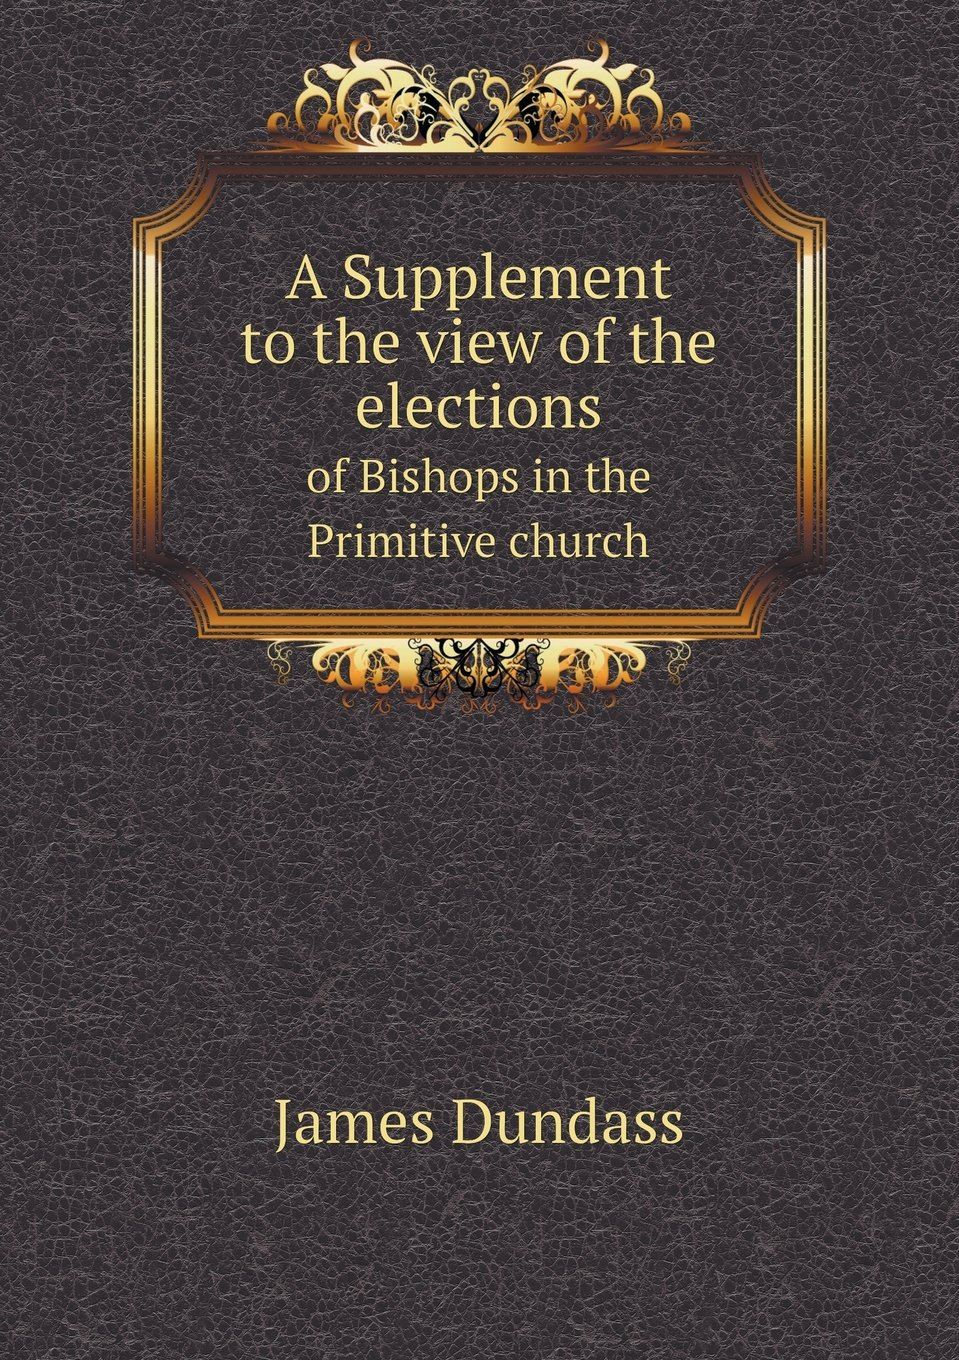 Download A Supplement to the view of the elections of Bishops in the Primitive church pdf